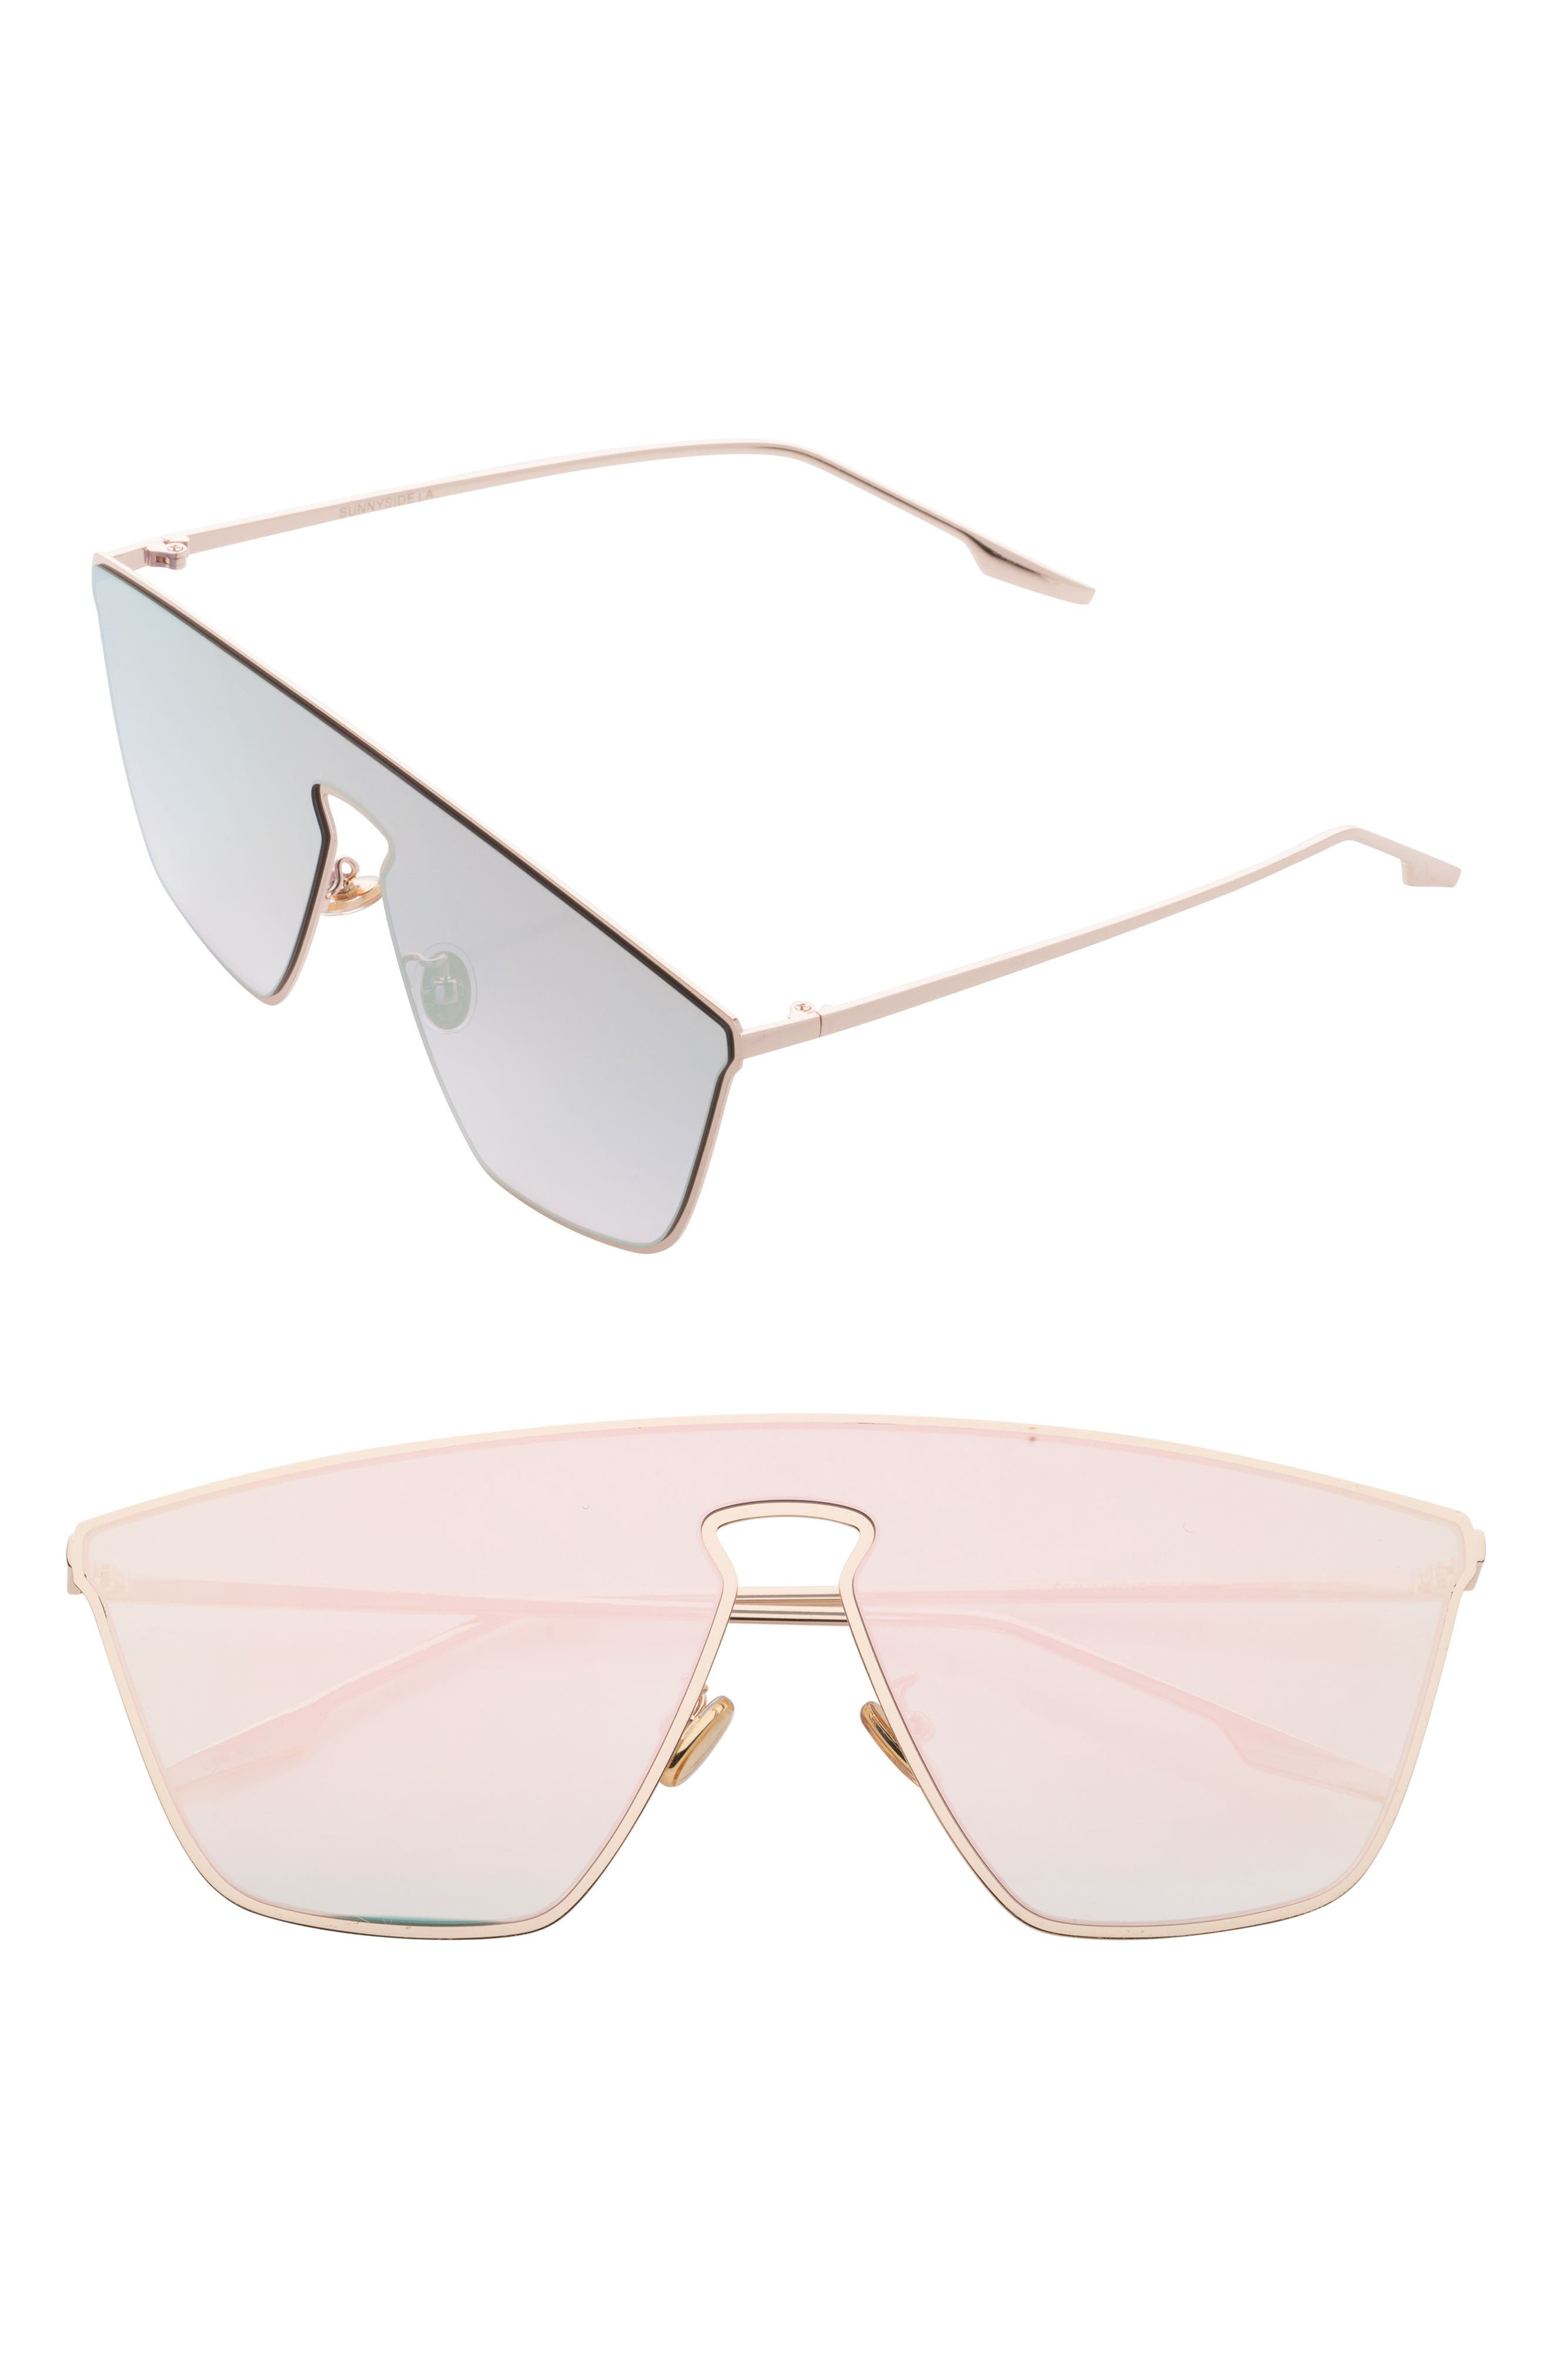 65mm Mirrored Shield Sunglasses,                         Main,                         color, Pink